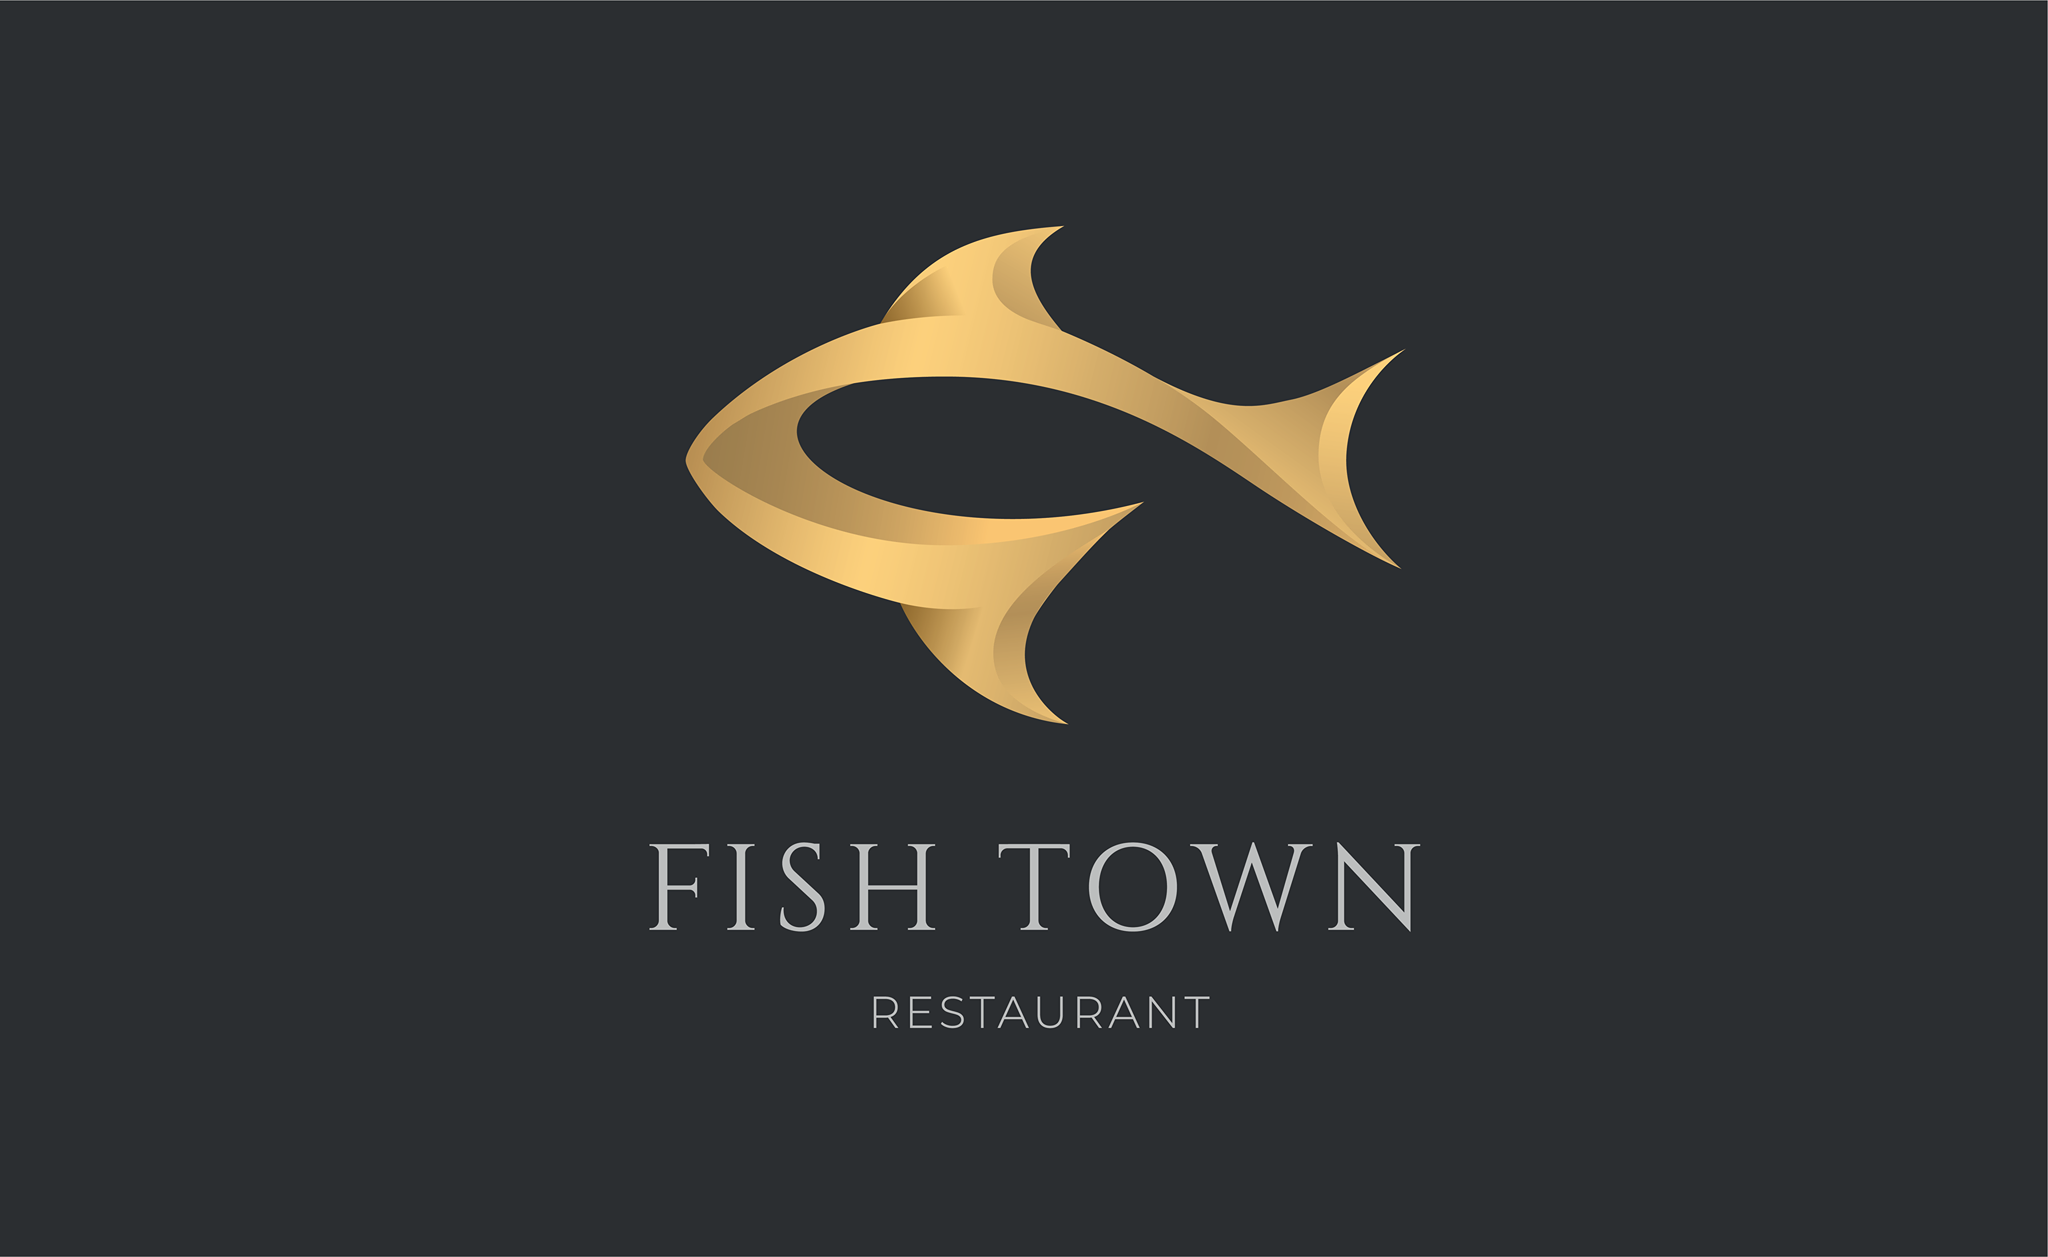 Fish Town